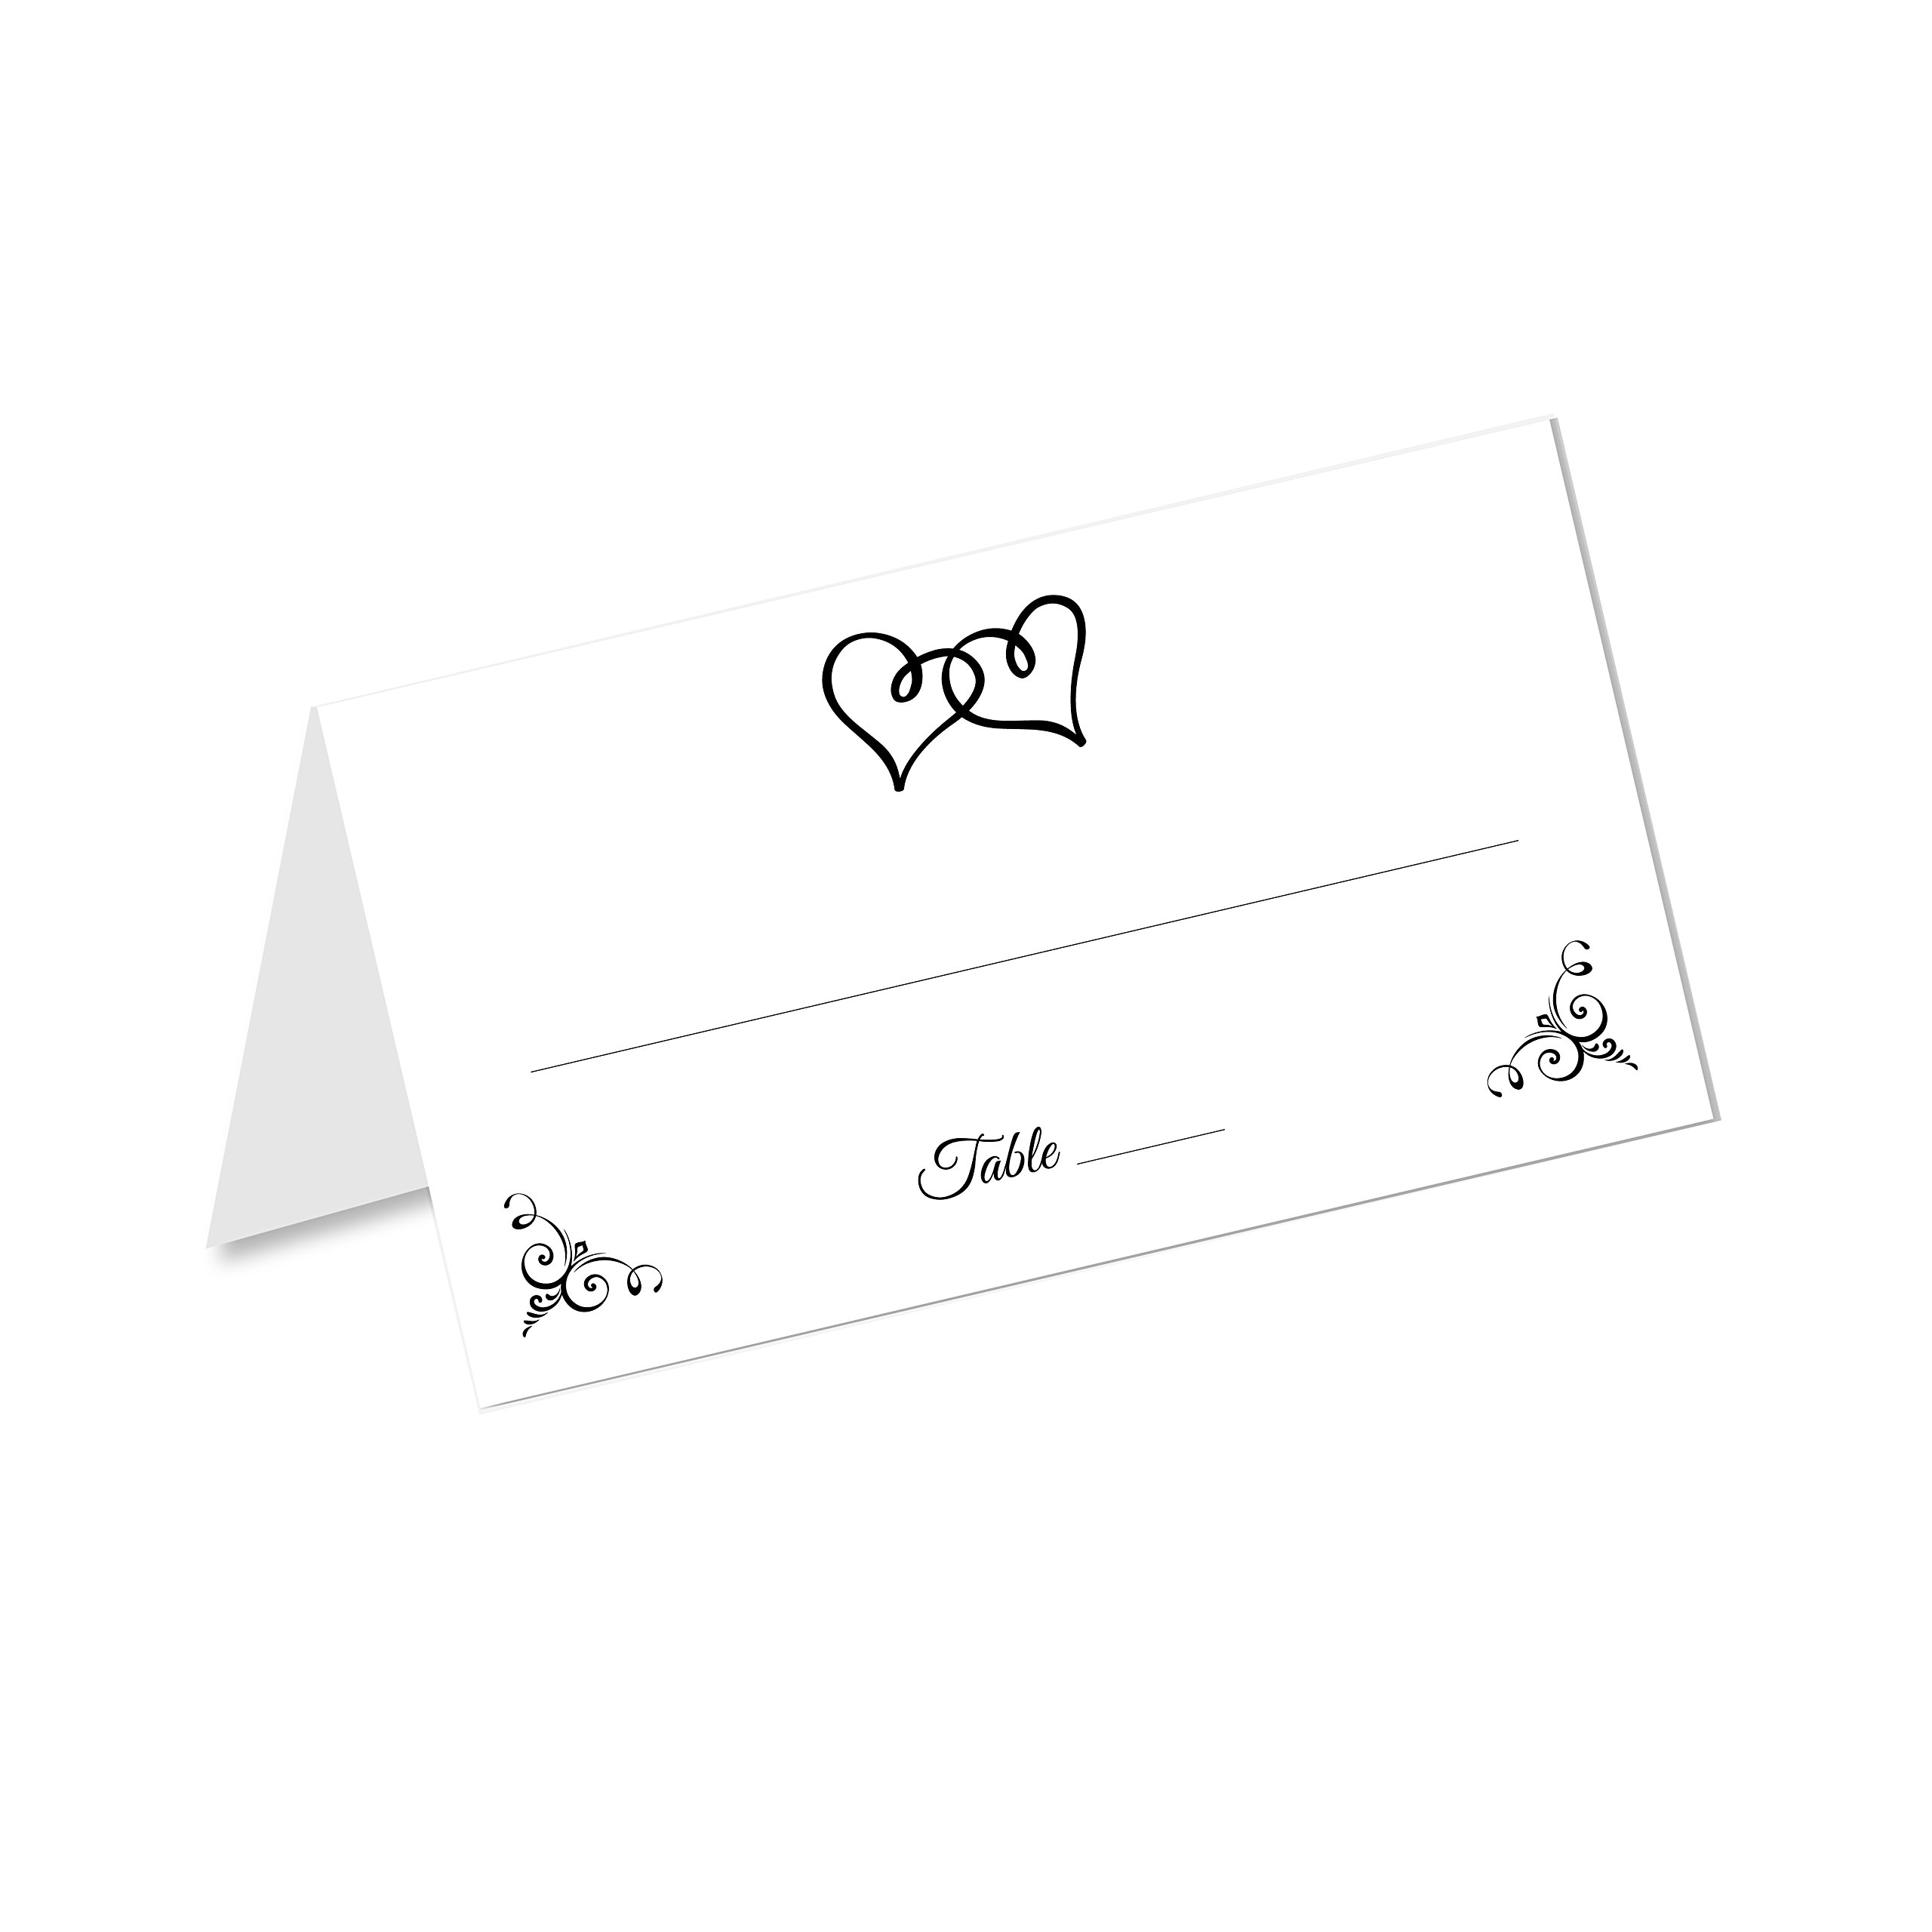 Old Blue Door Invites Double Heart Wedding Table Tented Place Cards (50 Count) - Fold Over Tent Style - Wedding Reception, Bridal Shower, Anniversary Party, Dinner Banquet Table Seating Cards